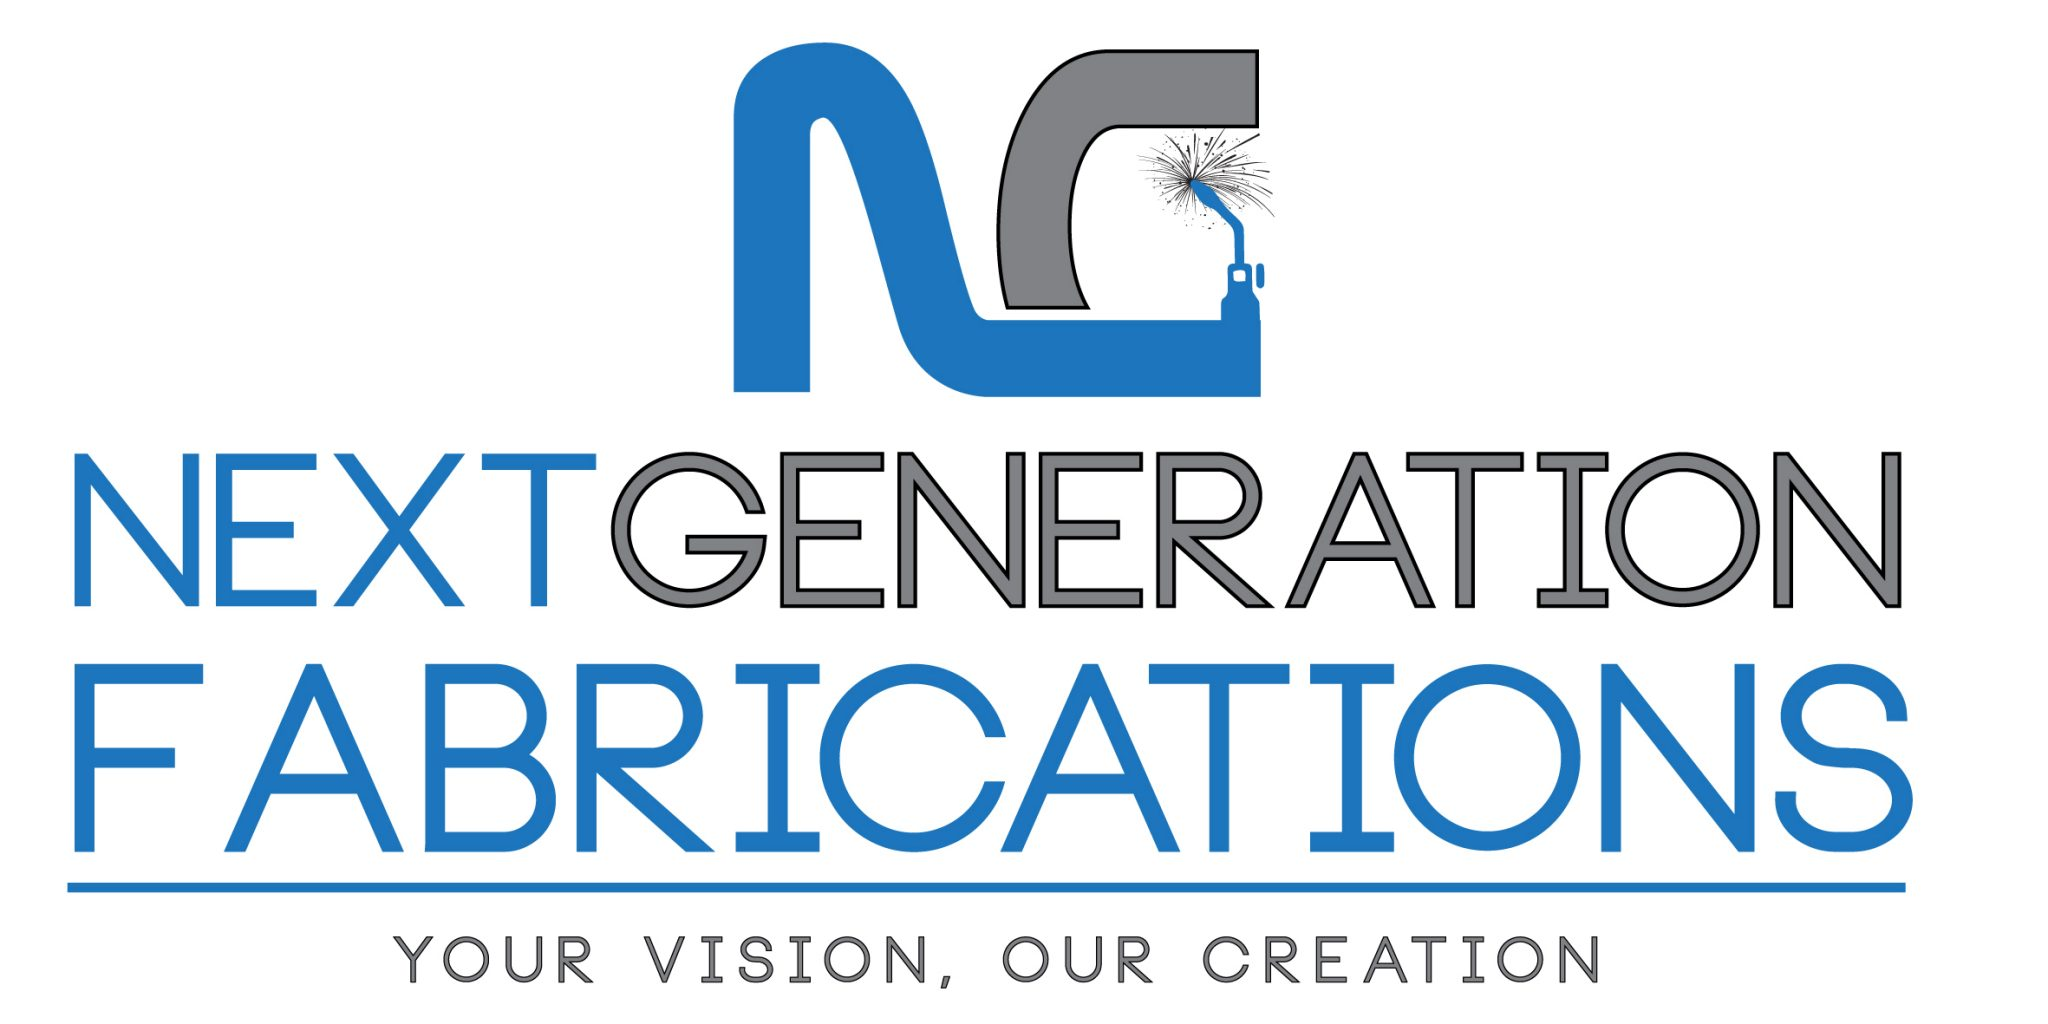 Next Generation Fabrications